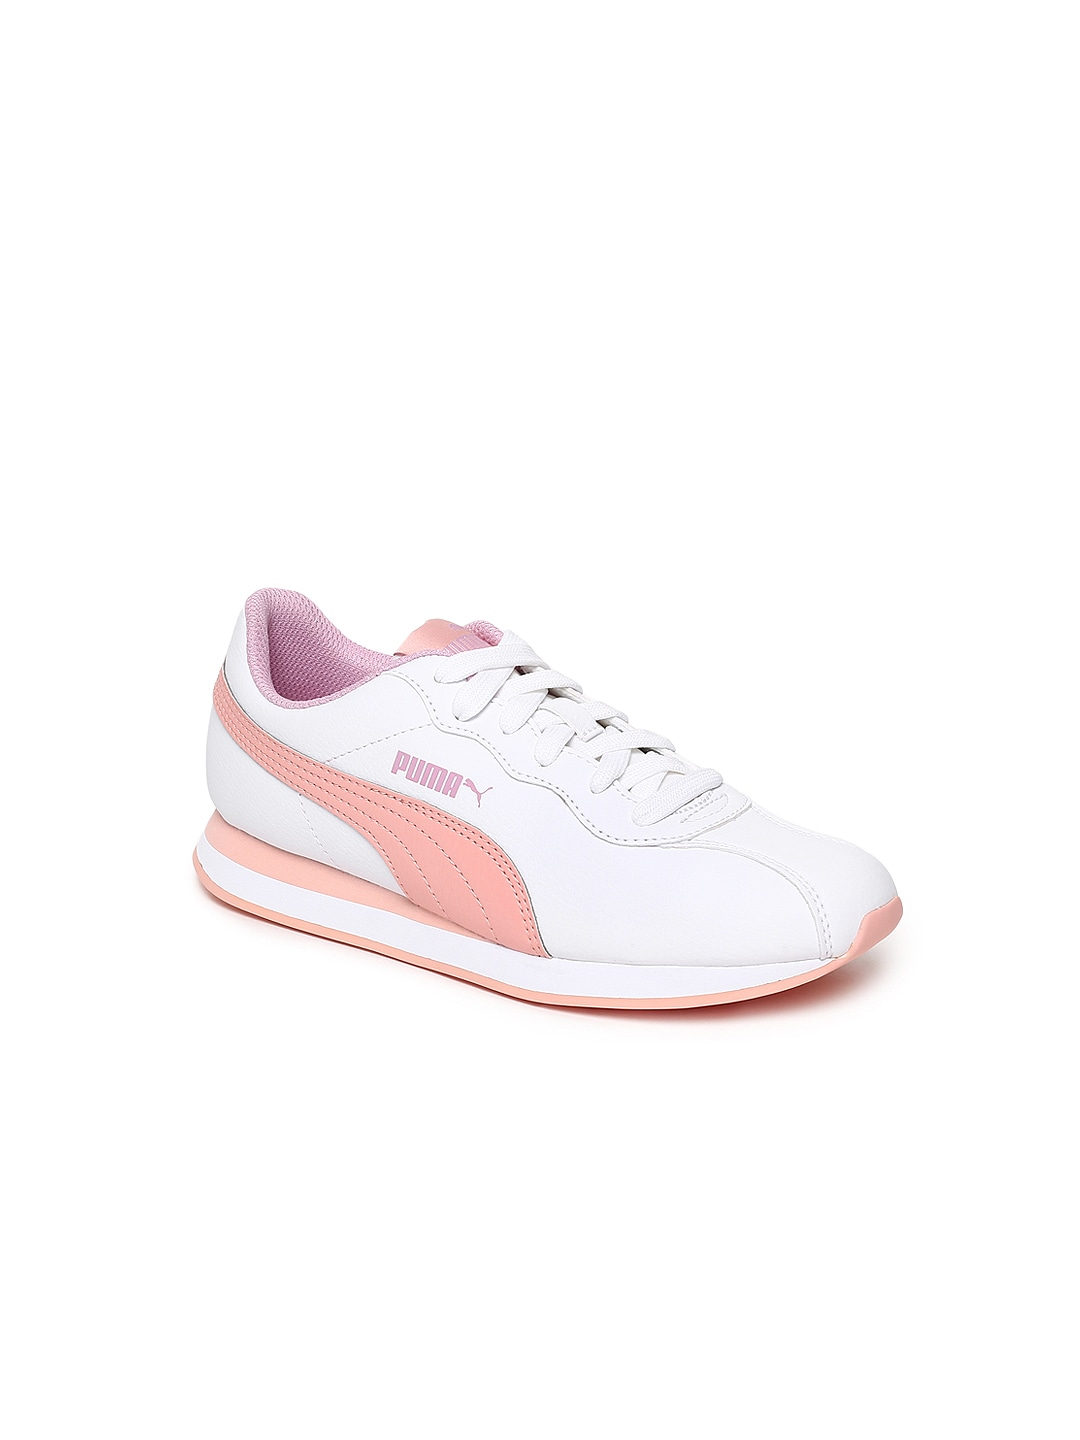 4c7add41f86 Puma Sneakers - Buy Puma Sneakers Online in India